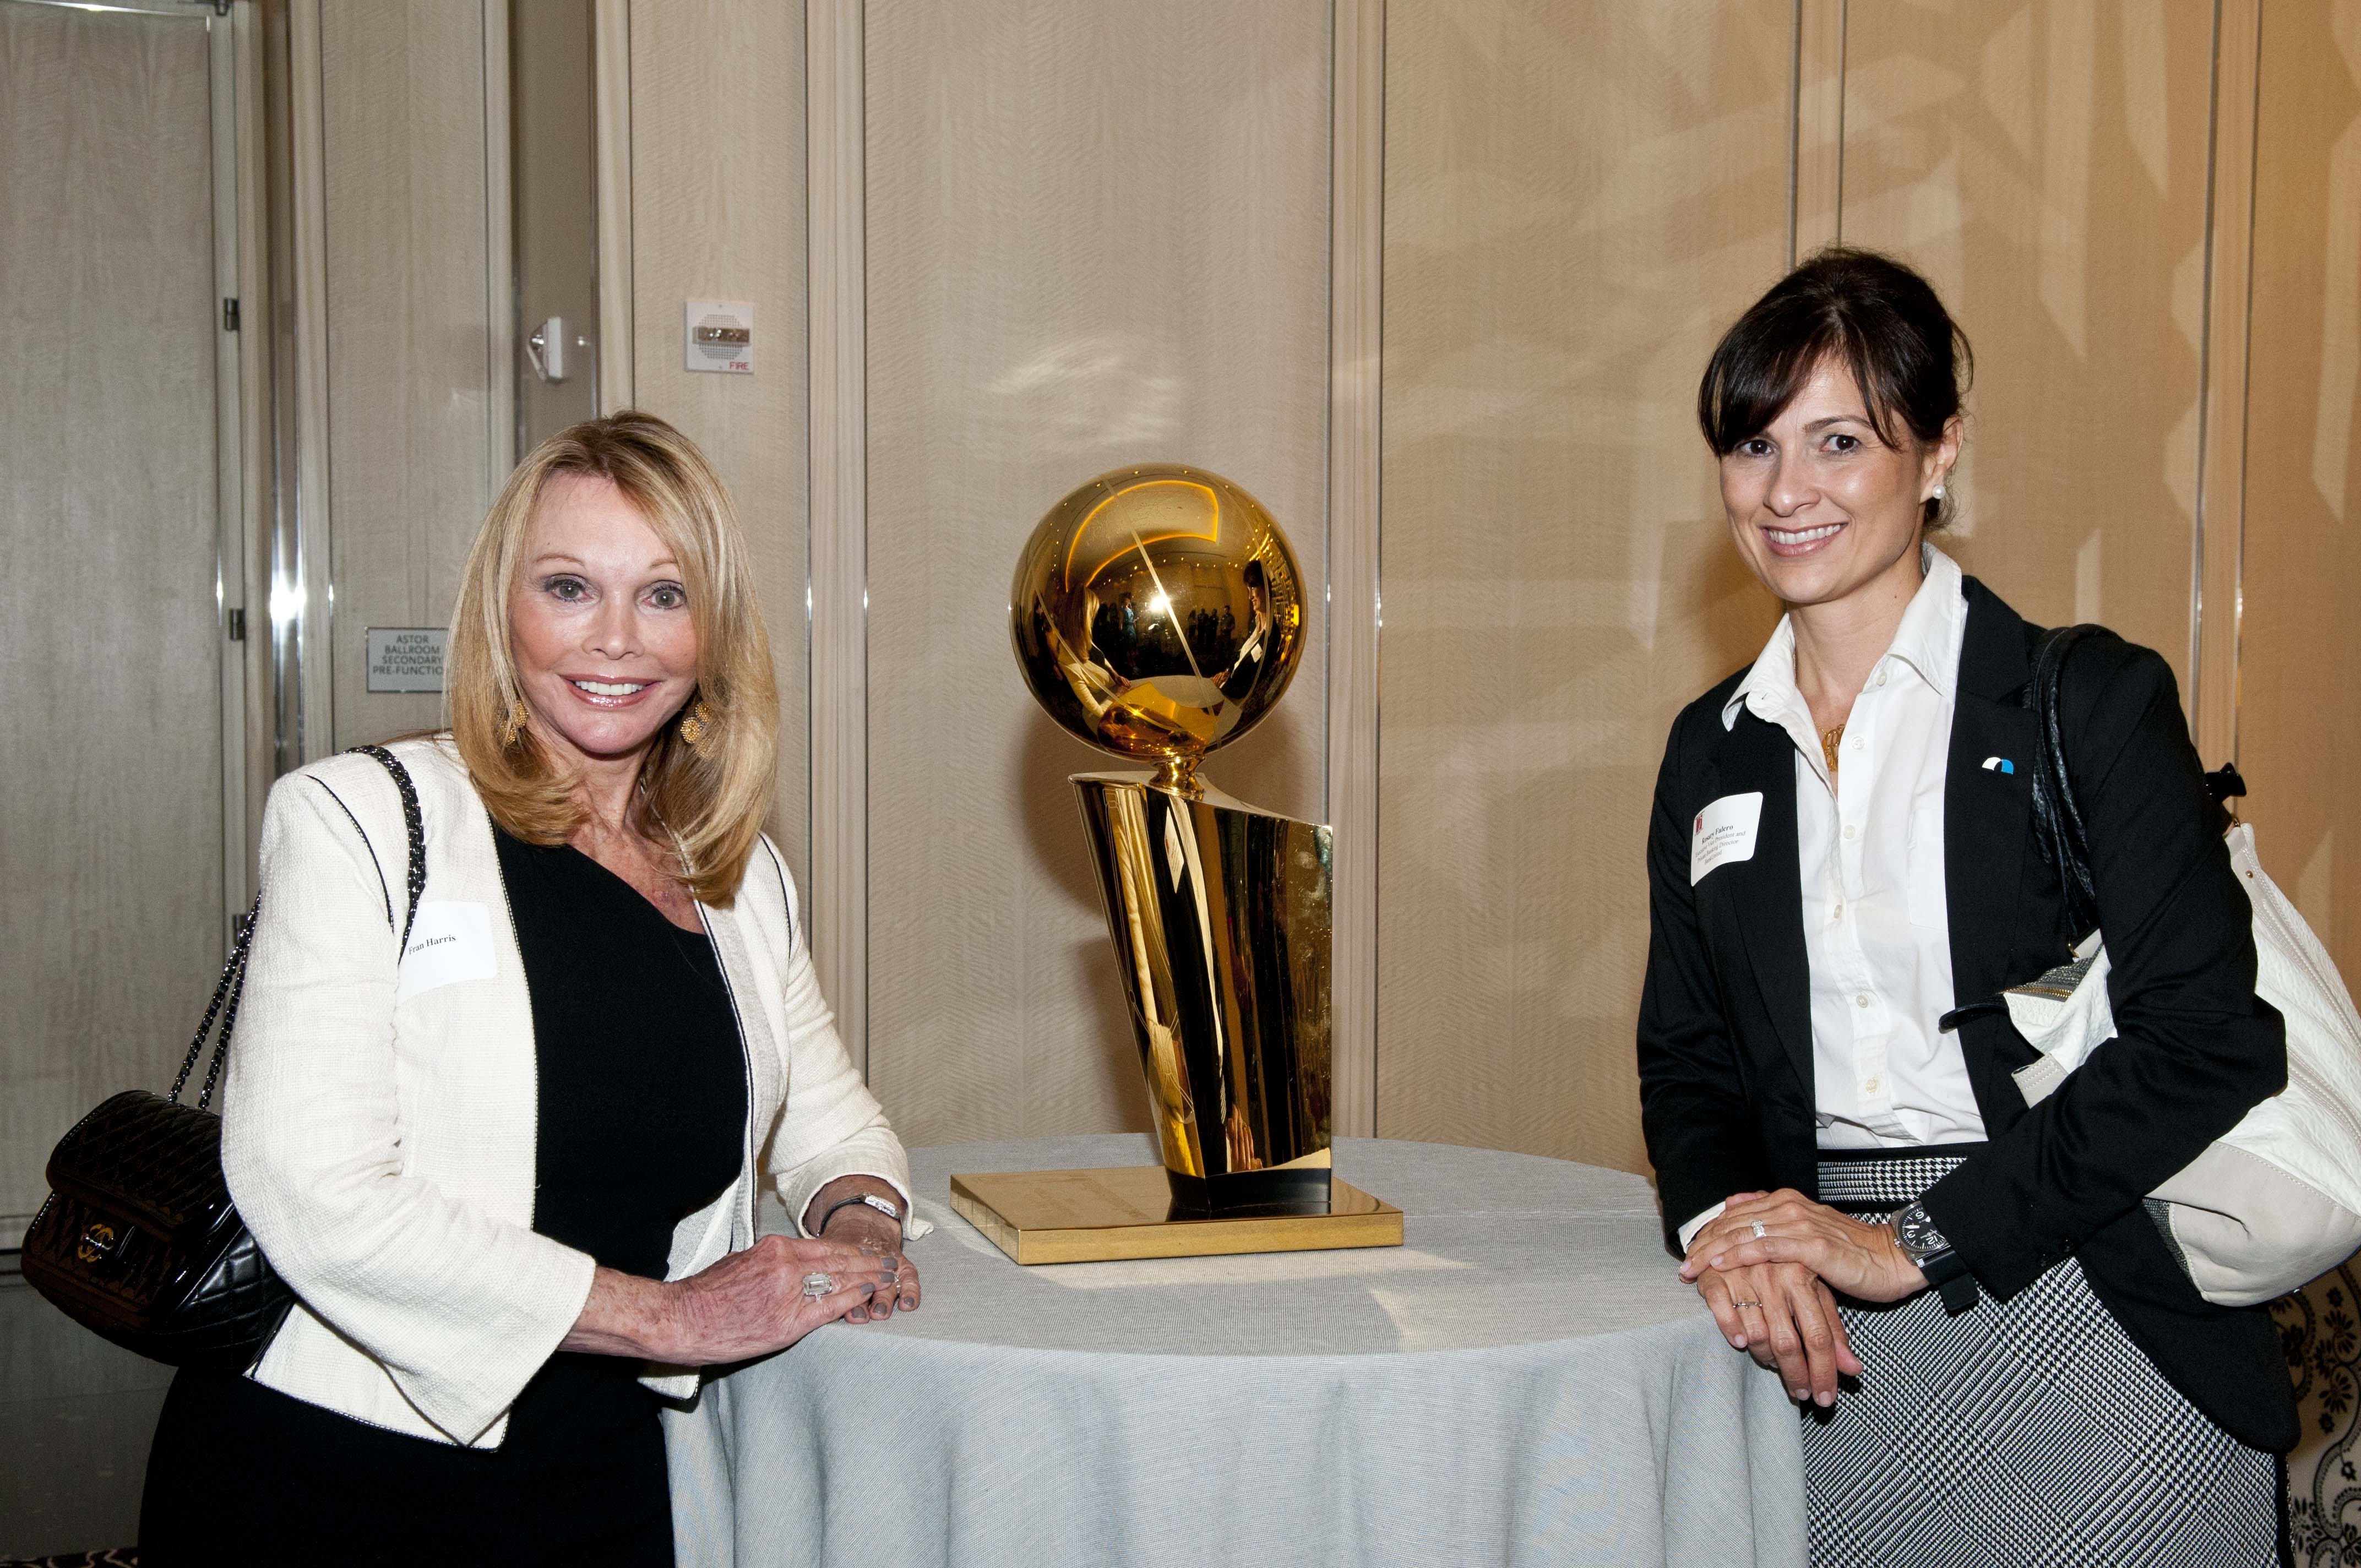 Fran Harris & Rosary Falero with 2012 HEAT Championship Trophy